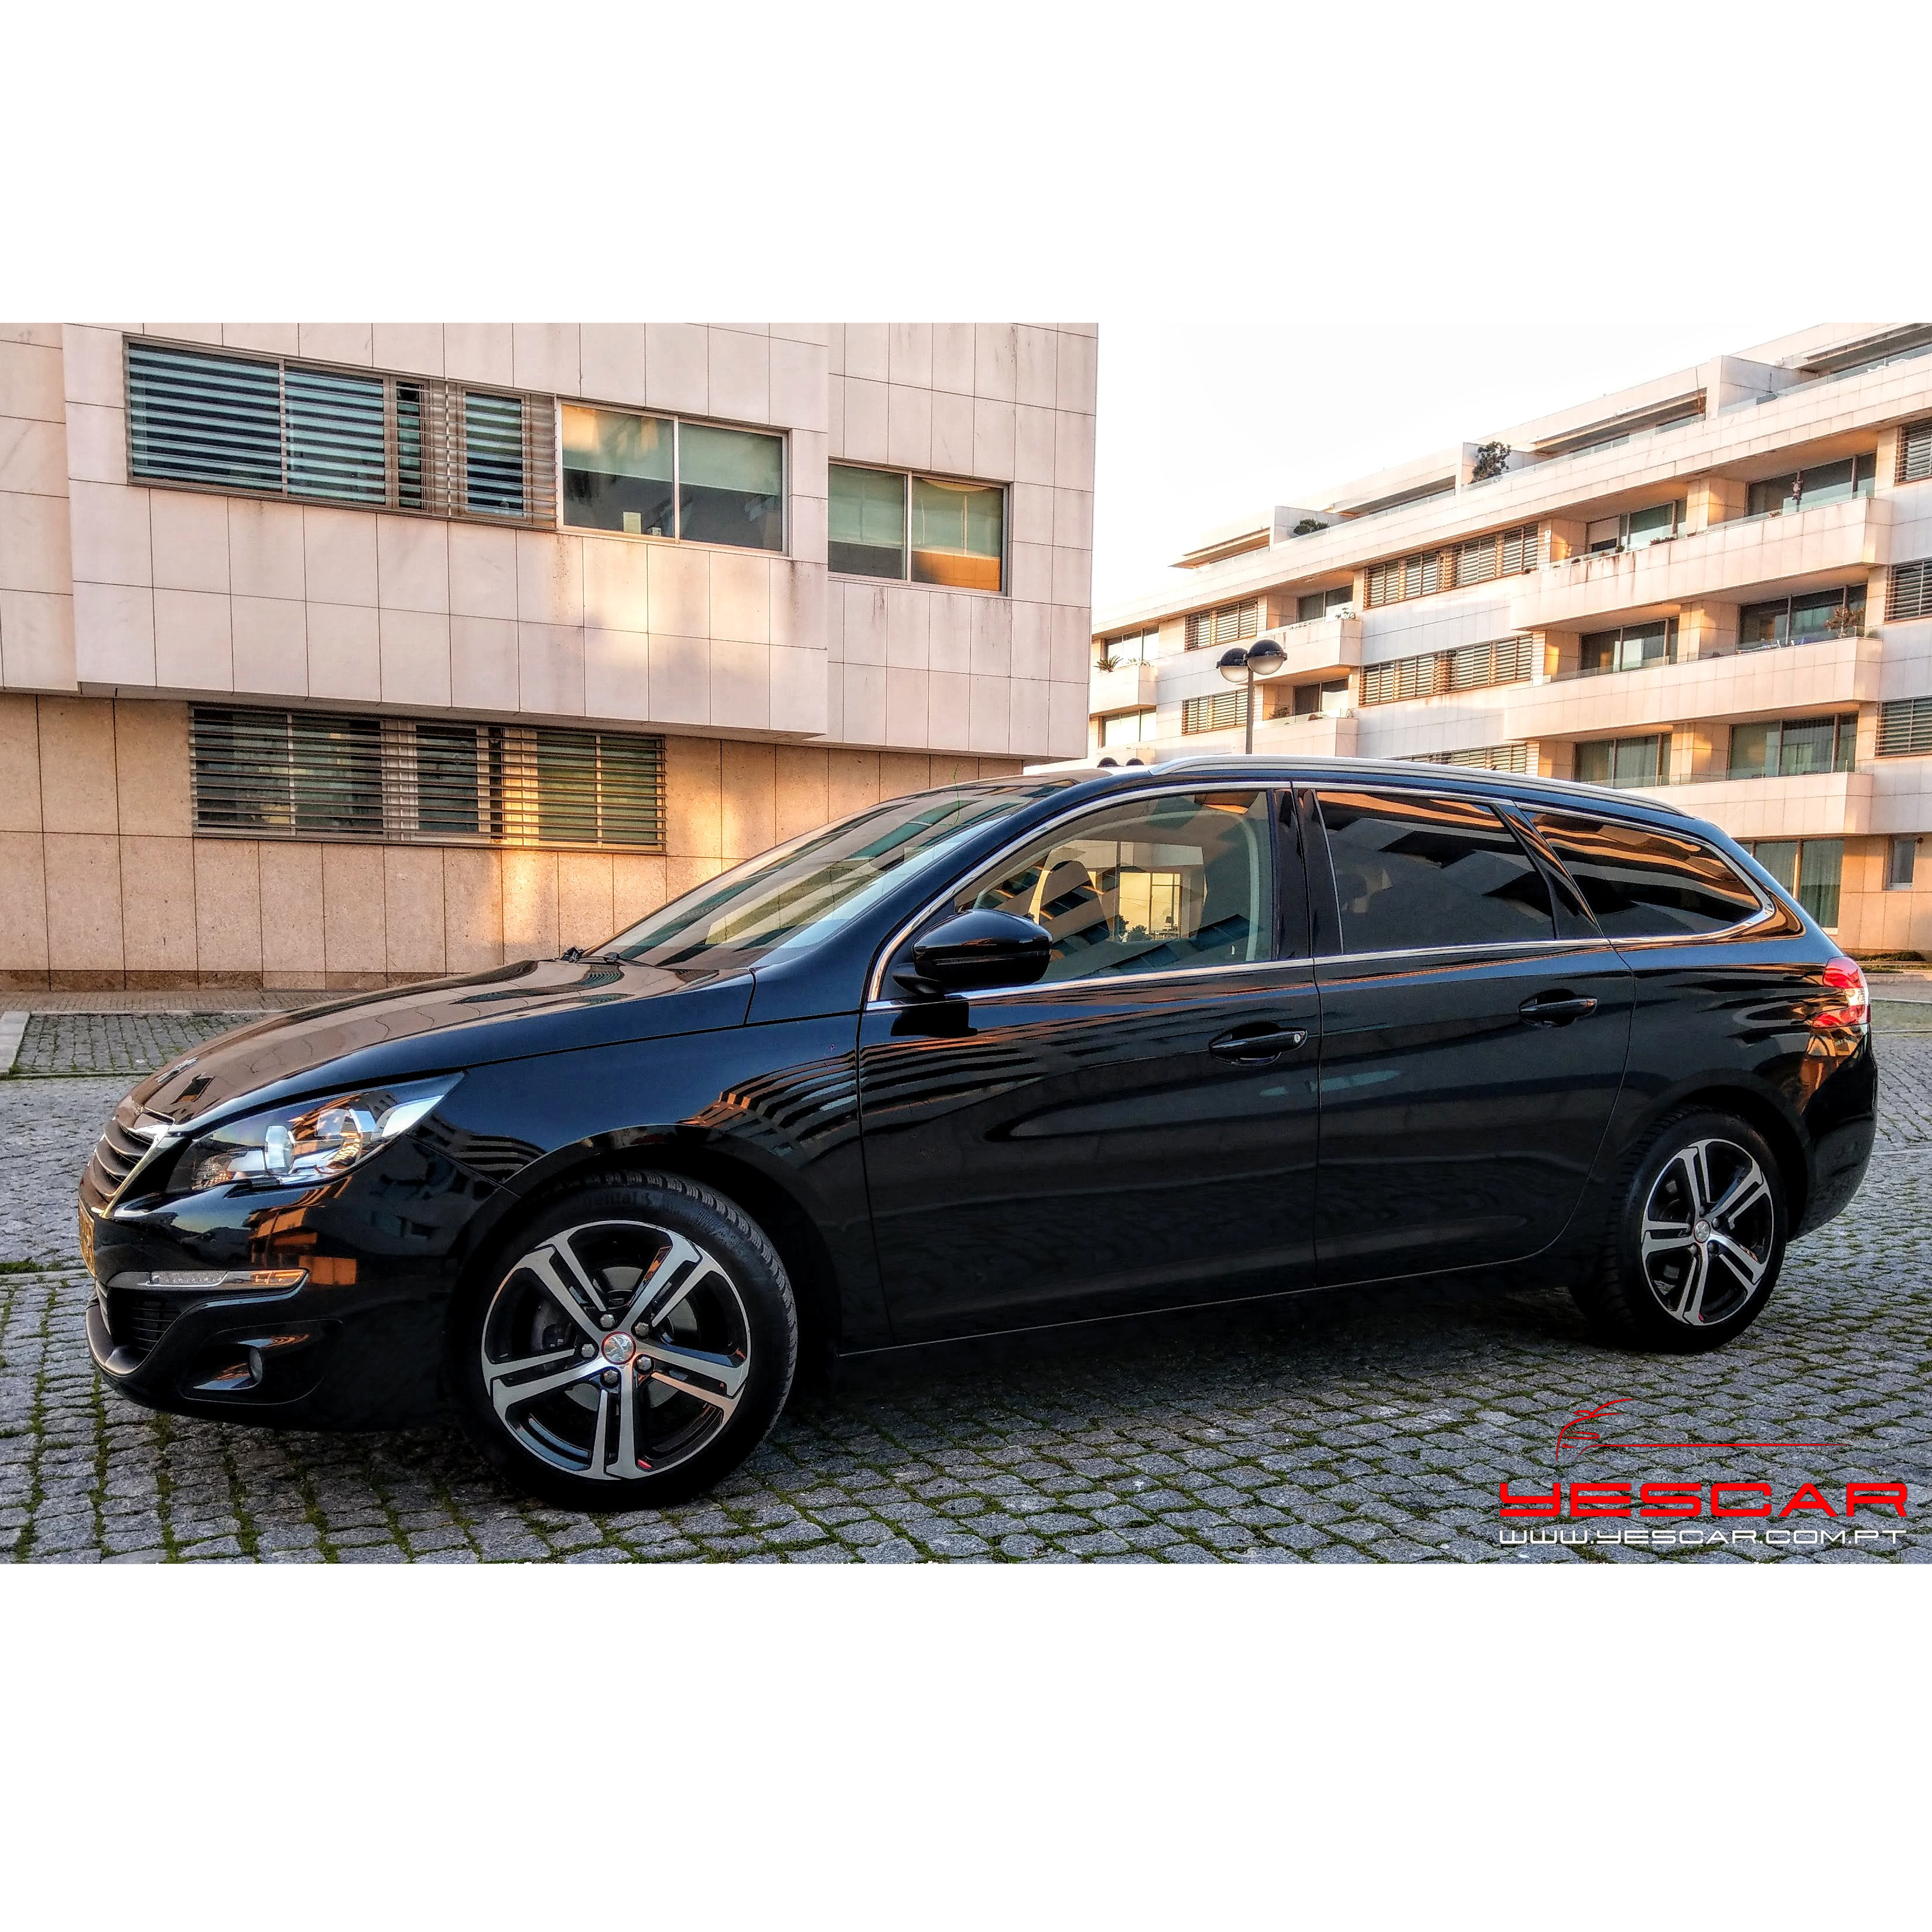 Peugeot_308SW_blueHDI_Yescar_automoveis (11)